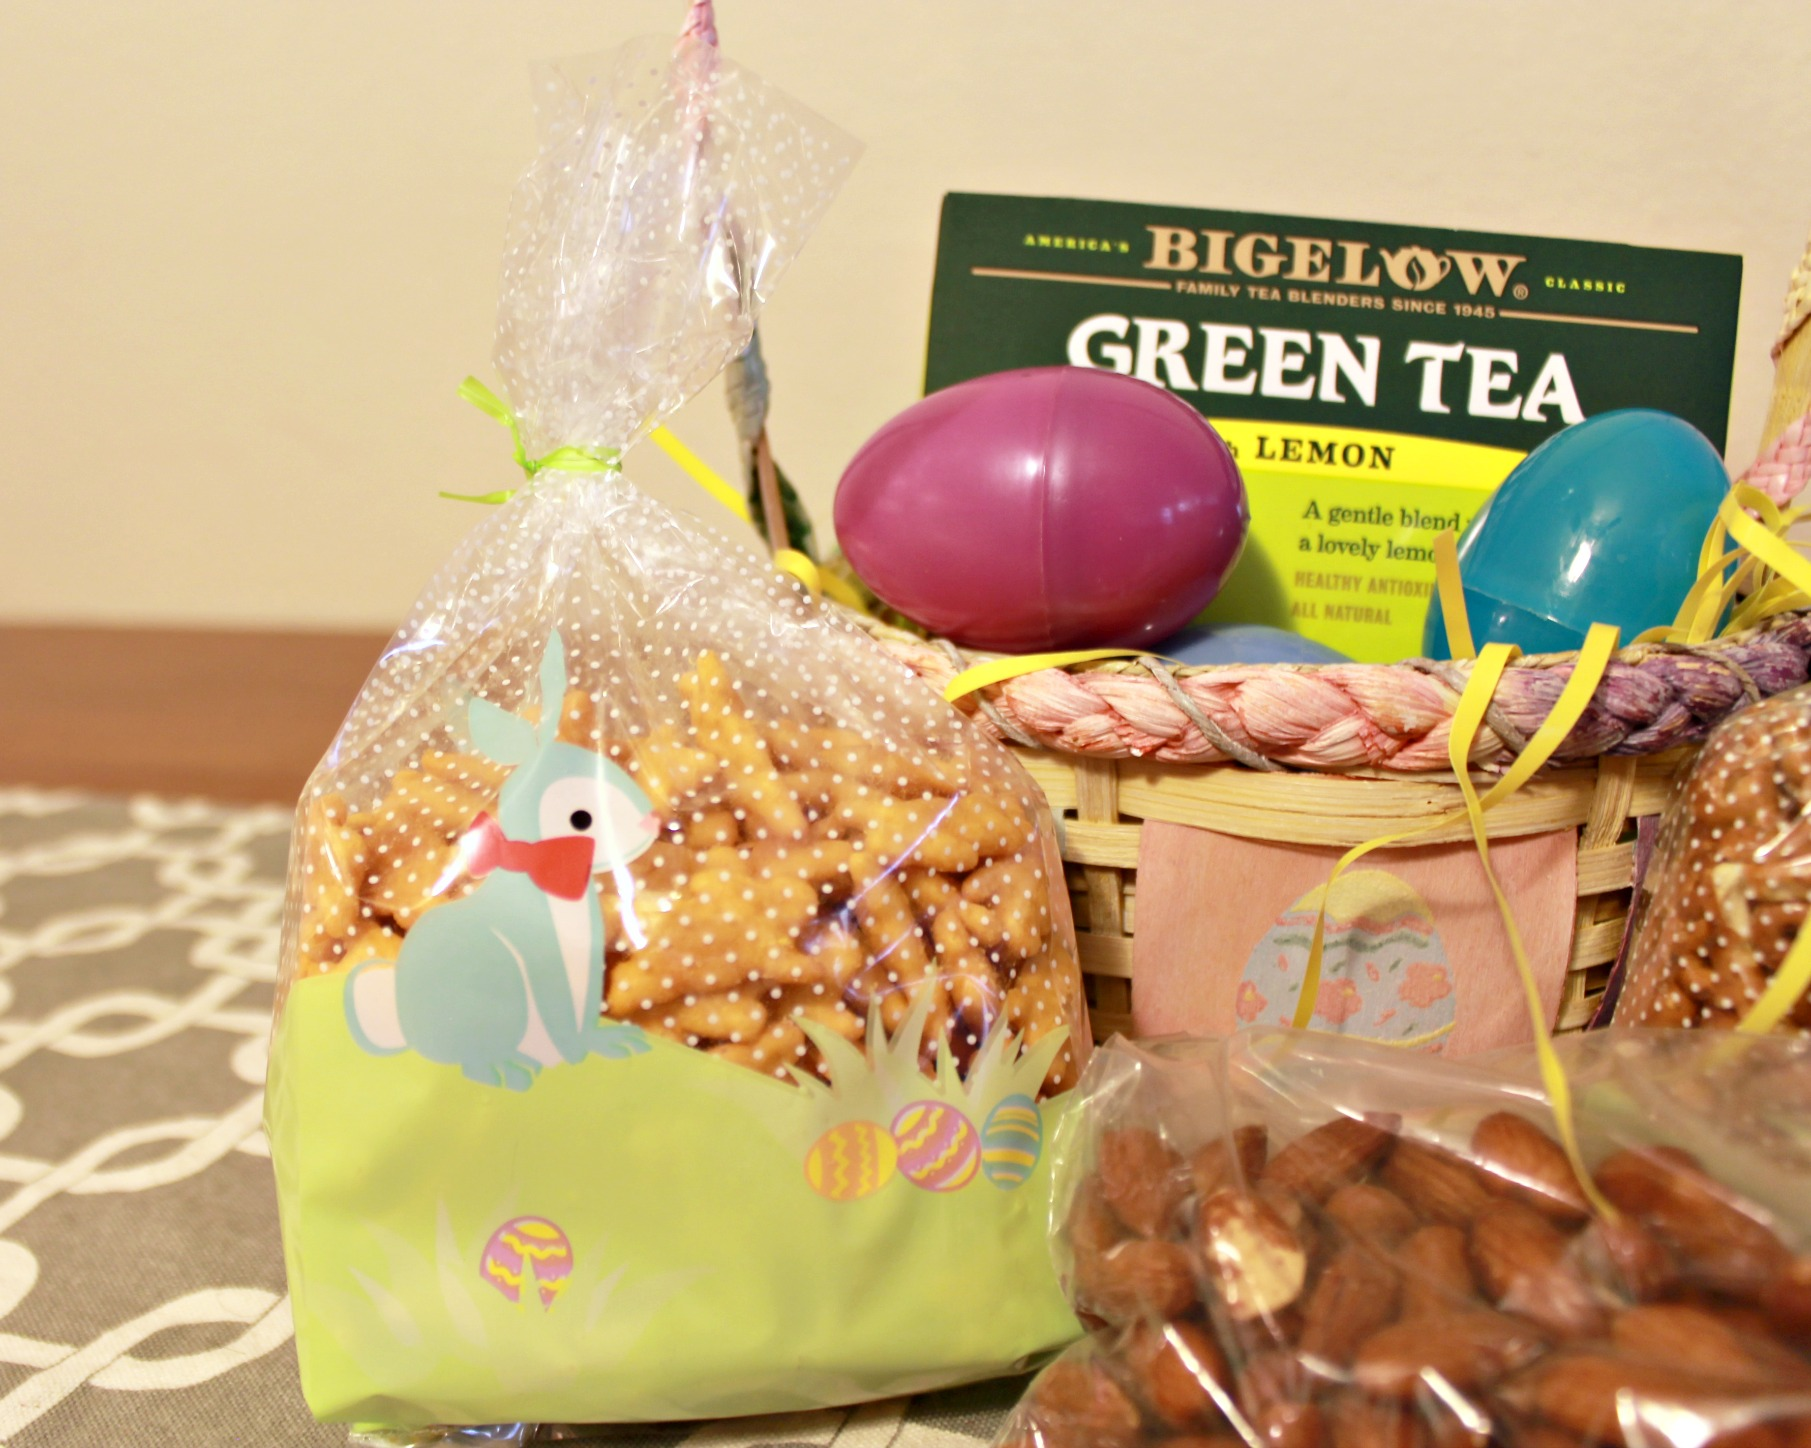 Bunny Crackers, Pretzels and Bigelow Tea for Easter! #TrendTea #CollectiveBias #shop